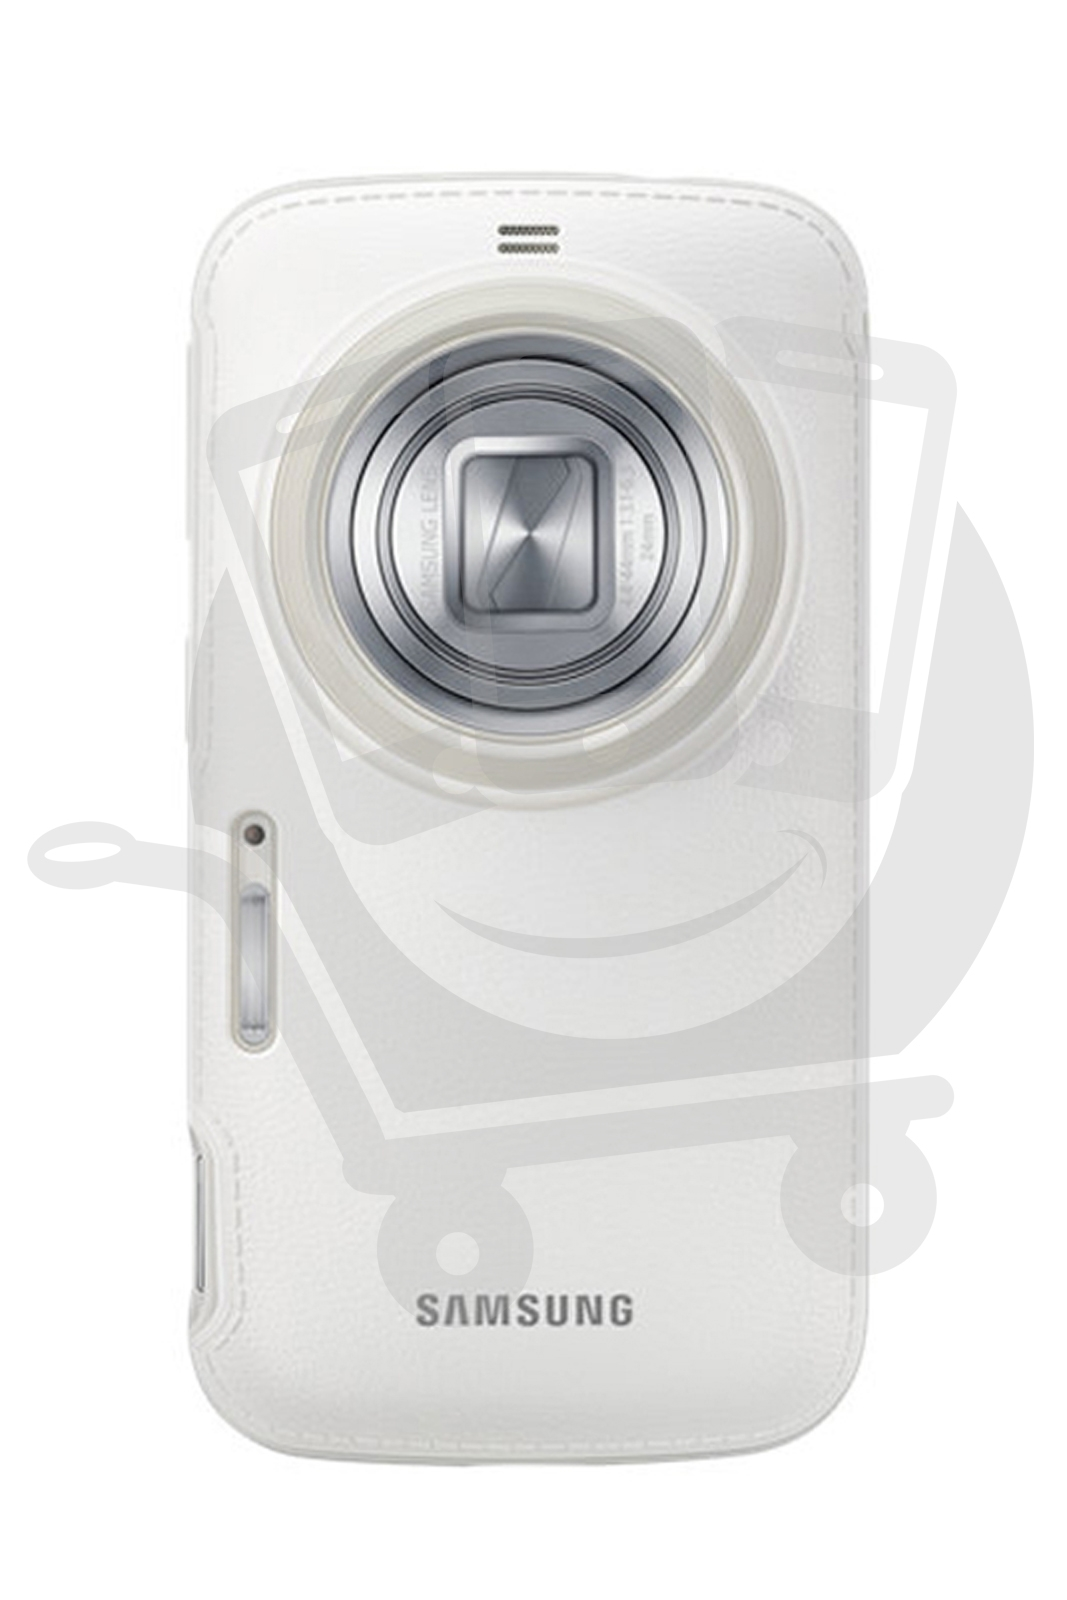 Samsung Galaxy K Zoom For Sale South Africa Karmashares Llc 8gb White Perfect Protection The Protective Cover Protects Your